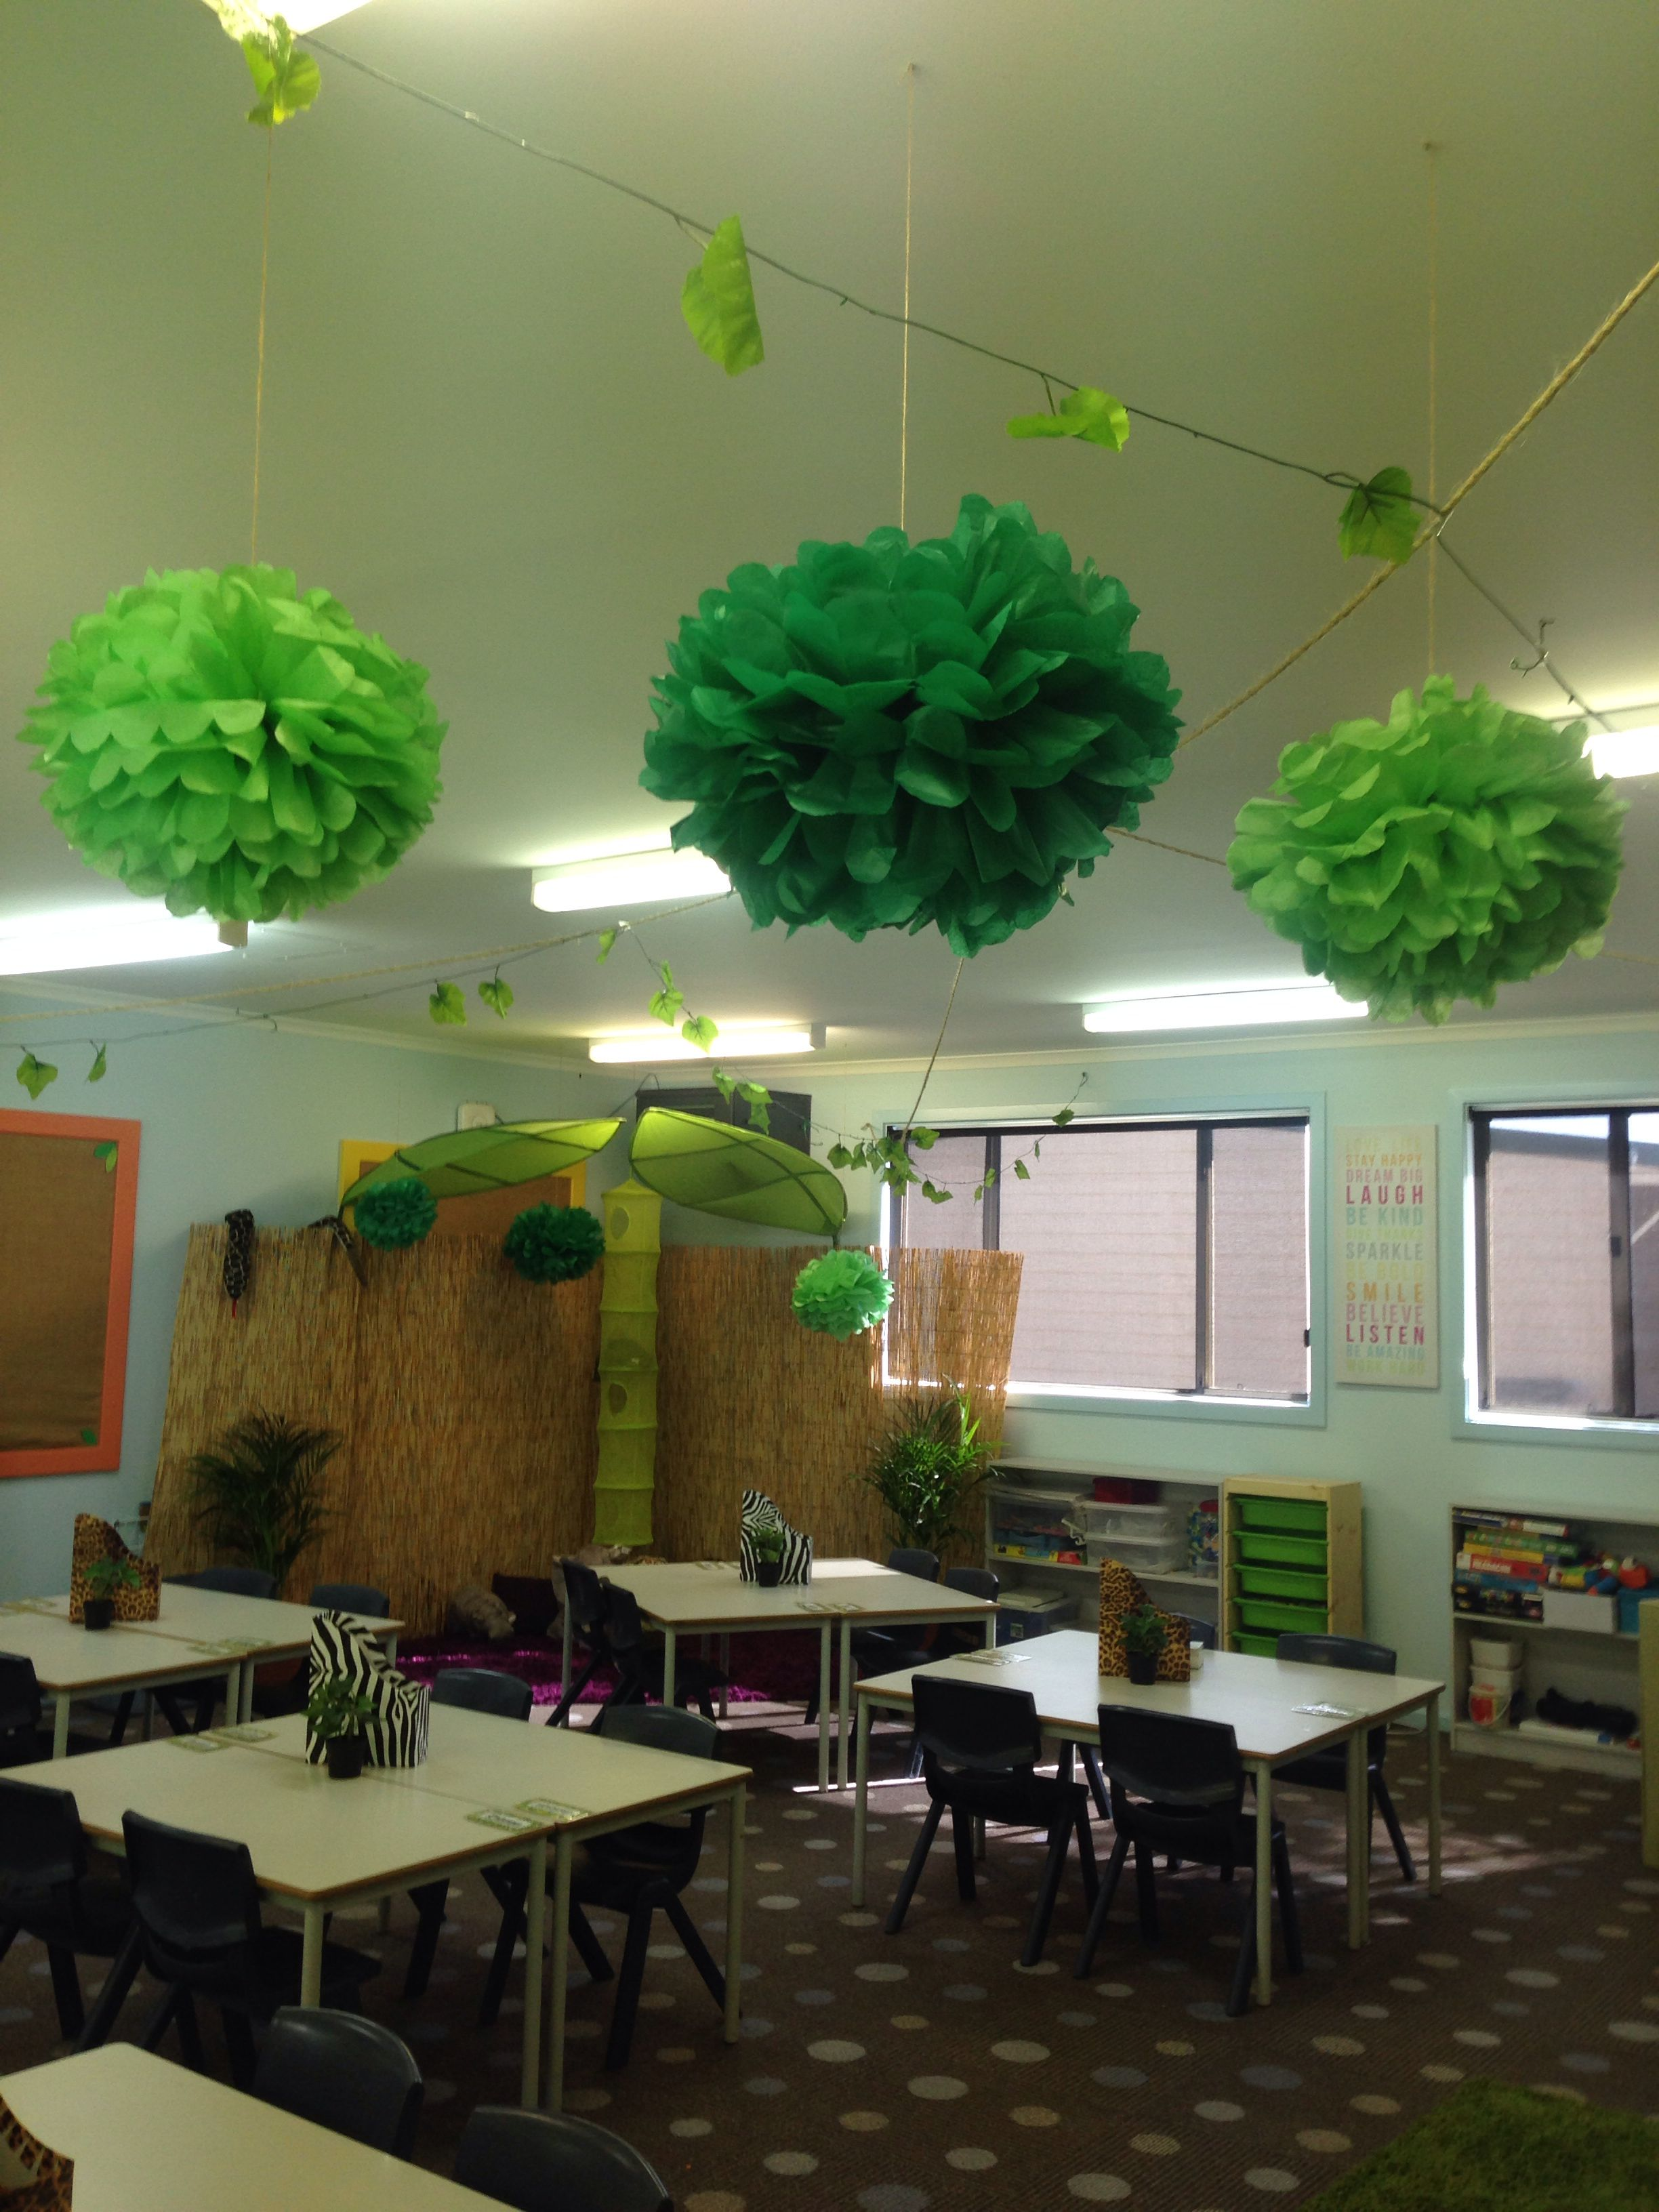 My Year 2 3 Jungle Safari themed classroom